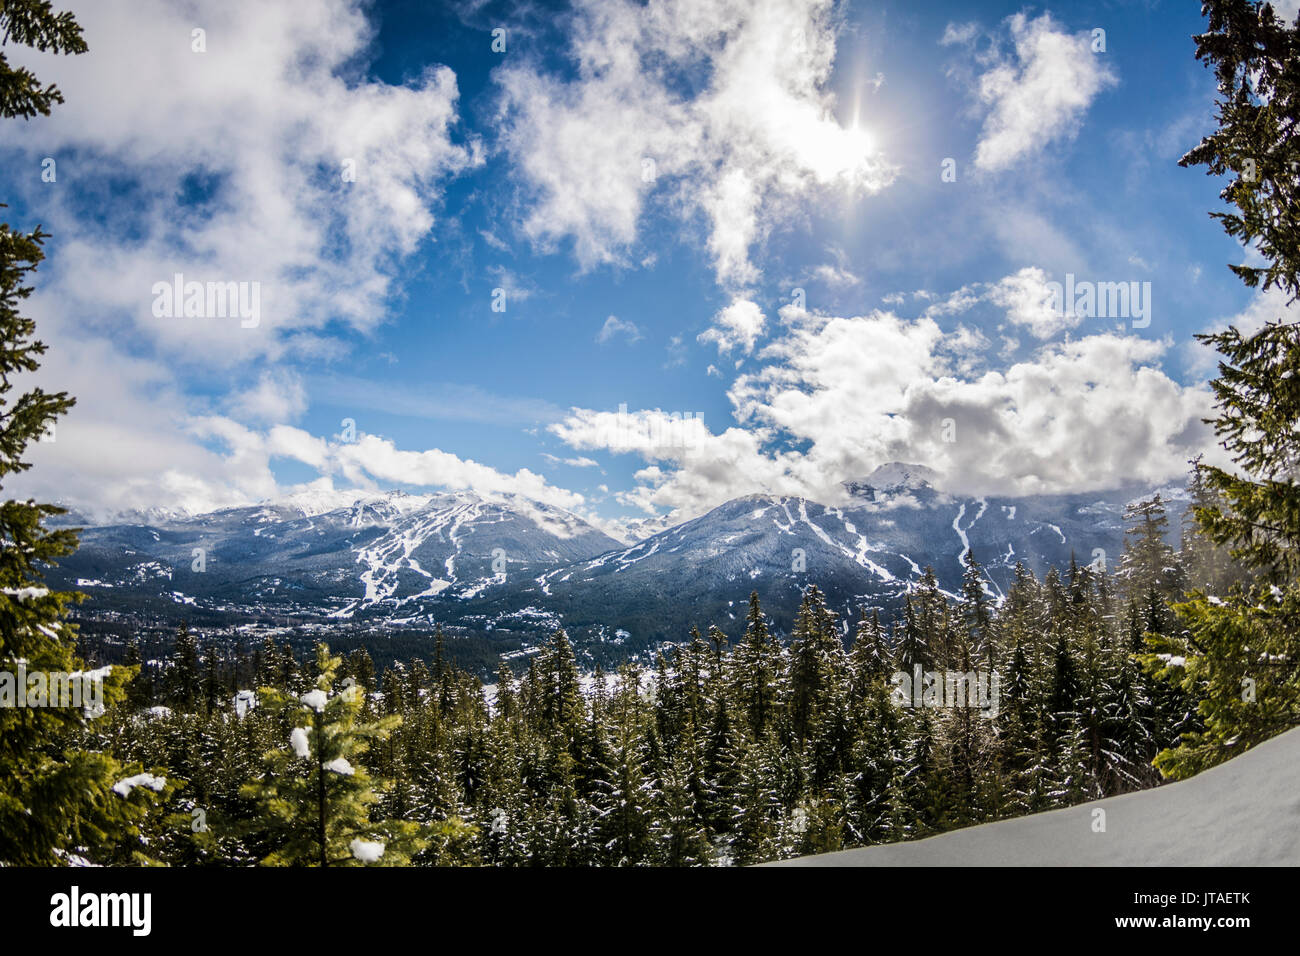 View of blue skies over Whistler Blackcomb from Sprout Mountain, British Columbia, Canada, North America Stock Photo